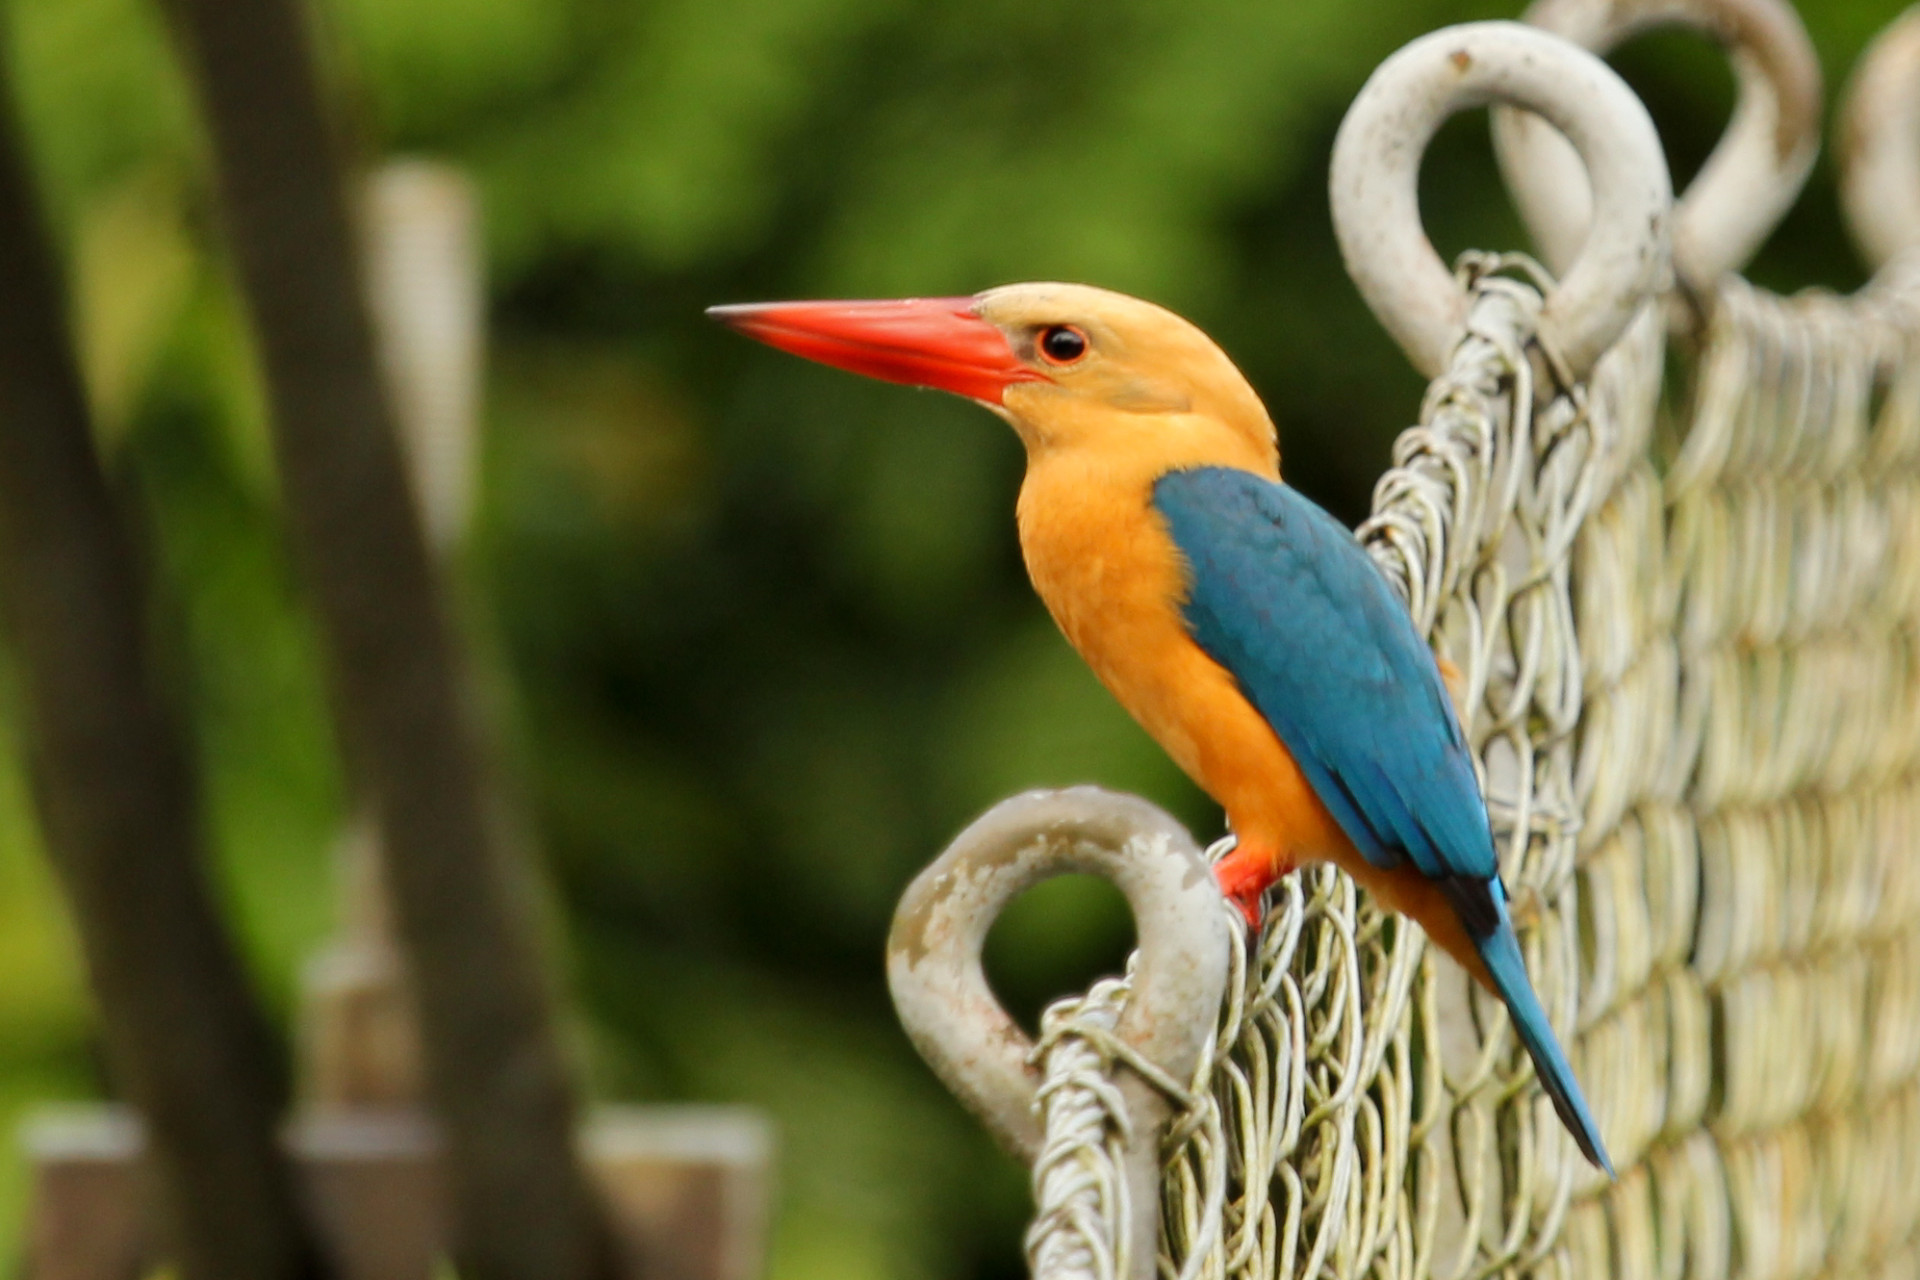 Stork-Billed Kingfisher, Danum Valley, Borneo, Nov. 2012